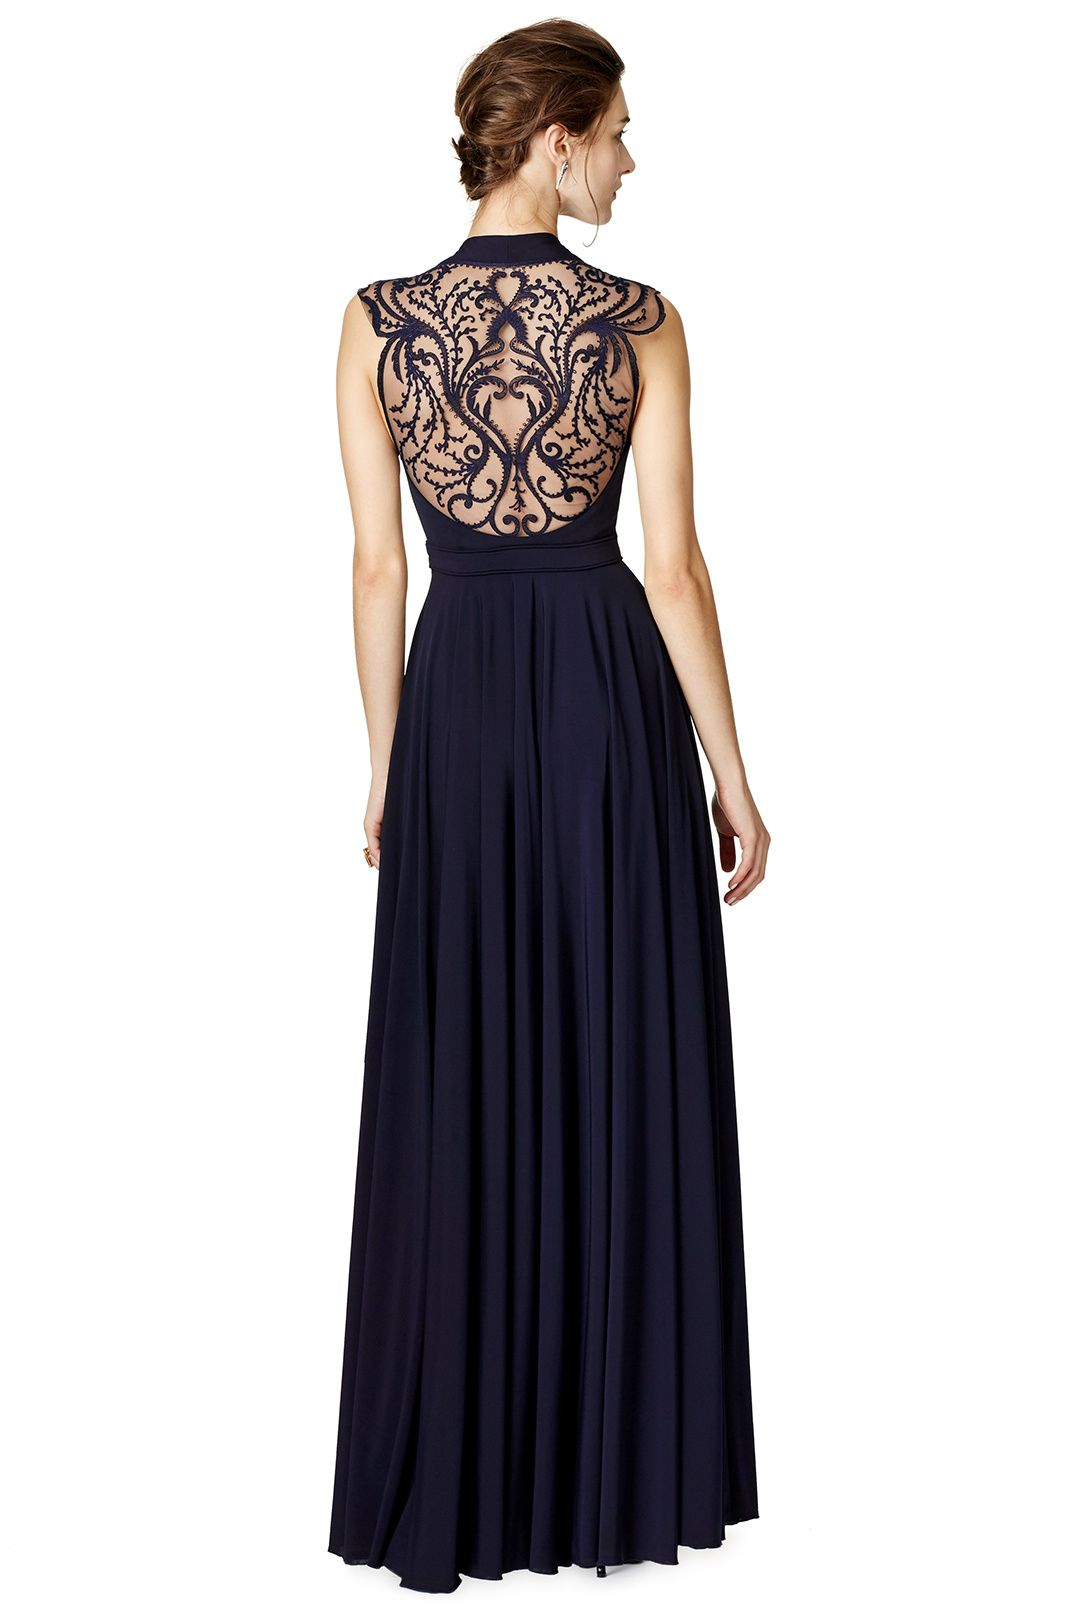 Rent Winona Gown by CATHERINE DEANE for 175 only at Rent